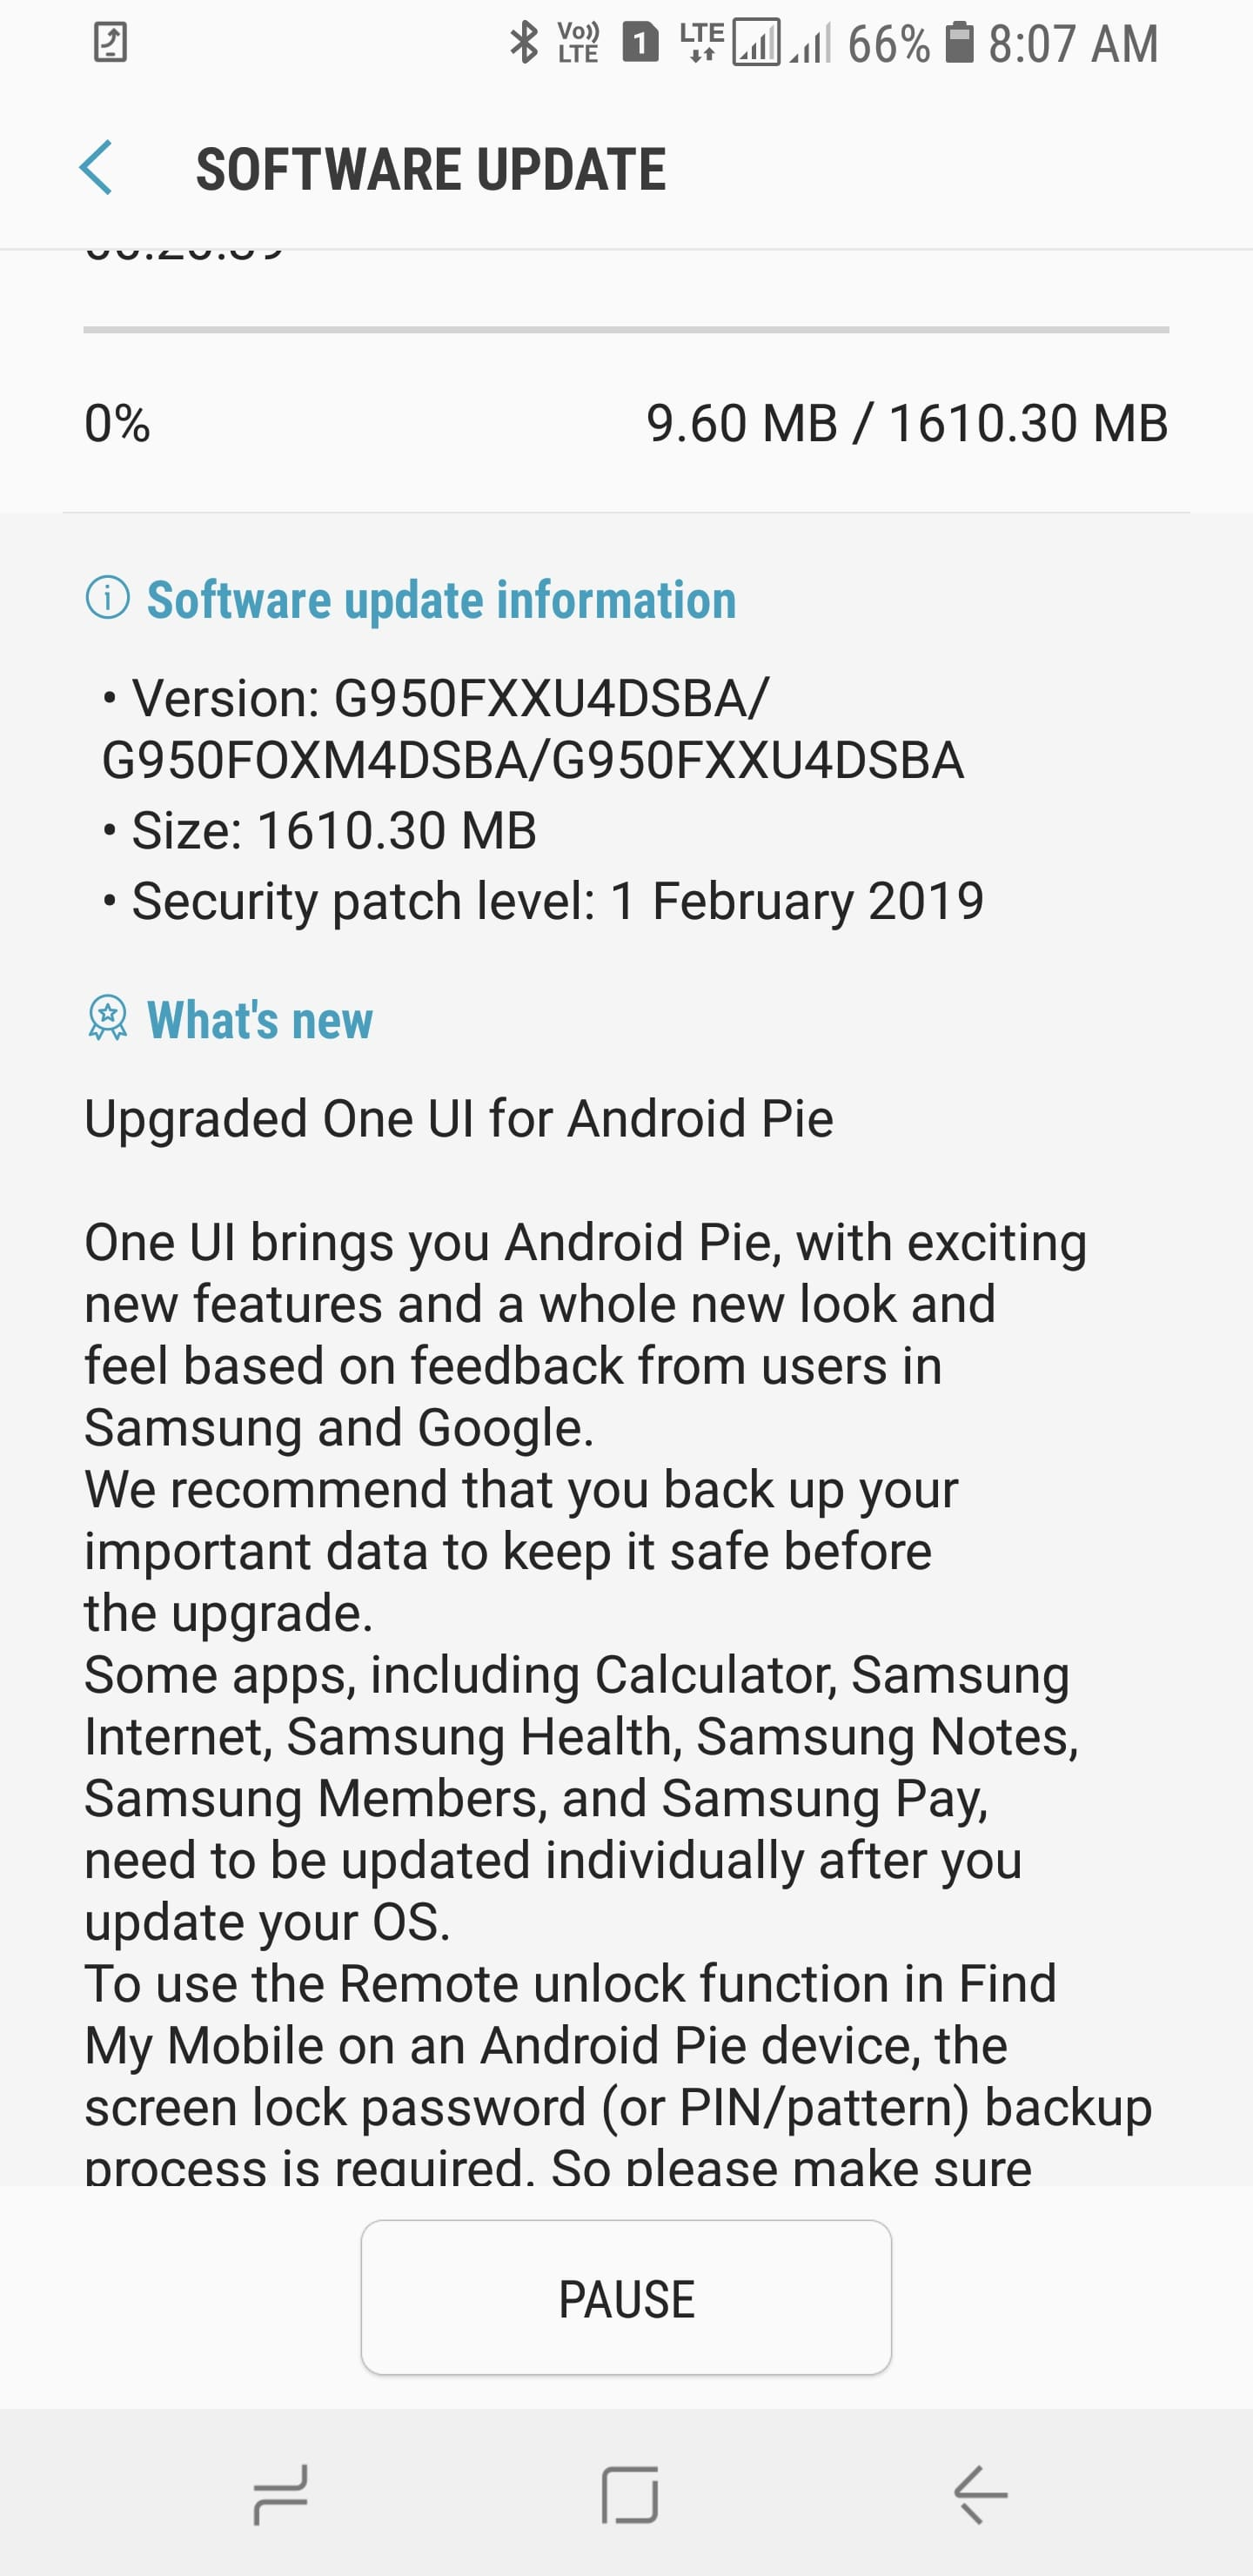 Samsung Galaxy S8 & S8 Plus Android Pie Update | One UI Features